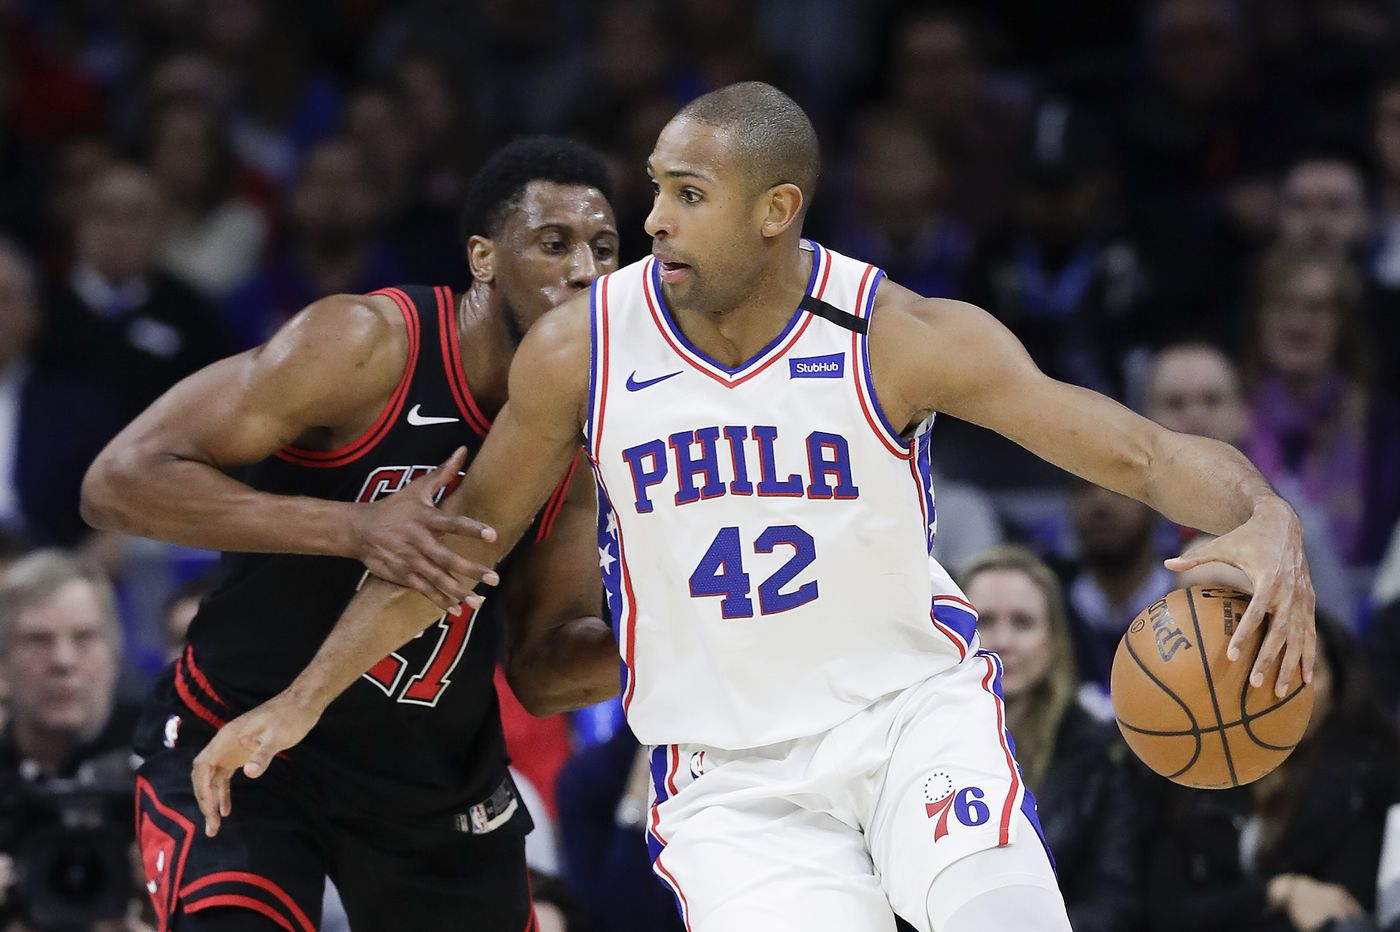 Sixers' Al Horford may benefit from fewer minutes and three-point attempts